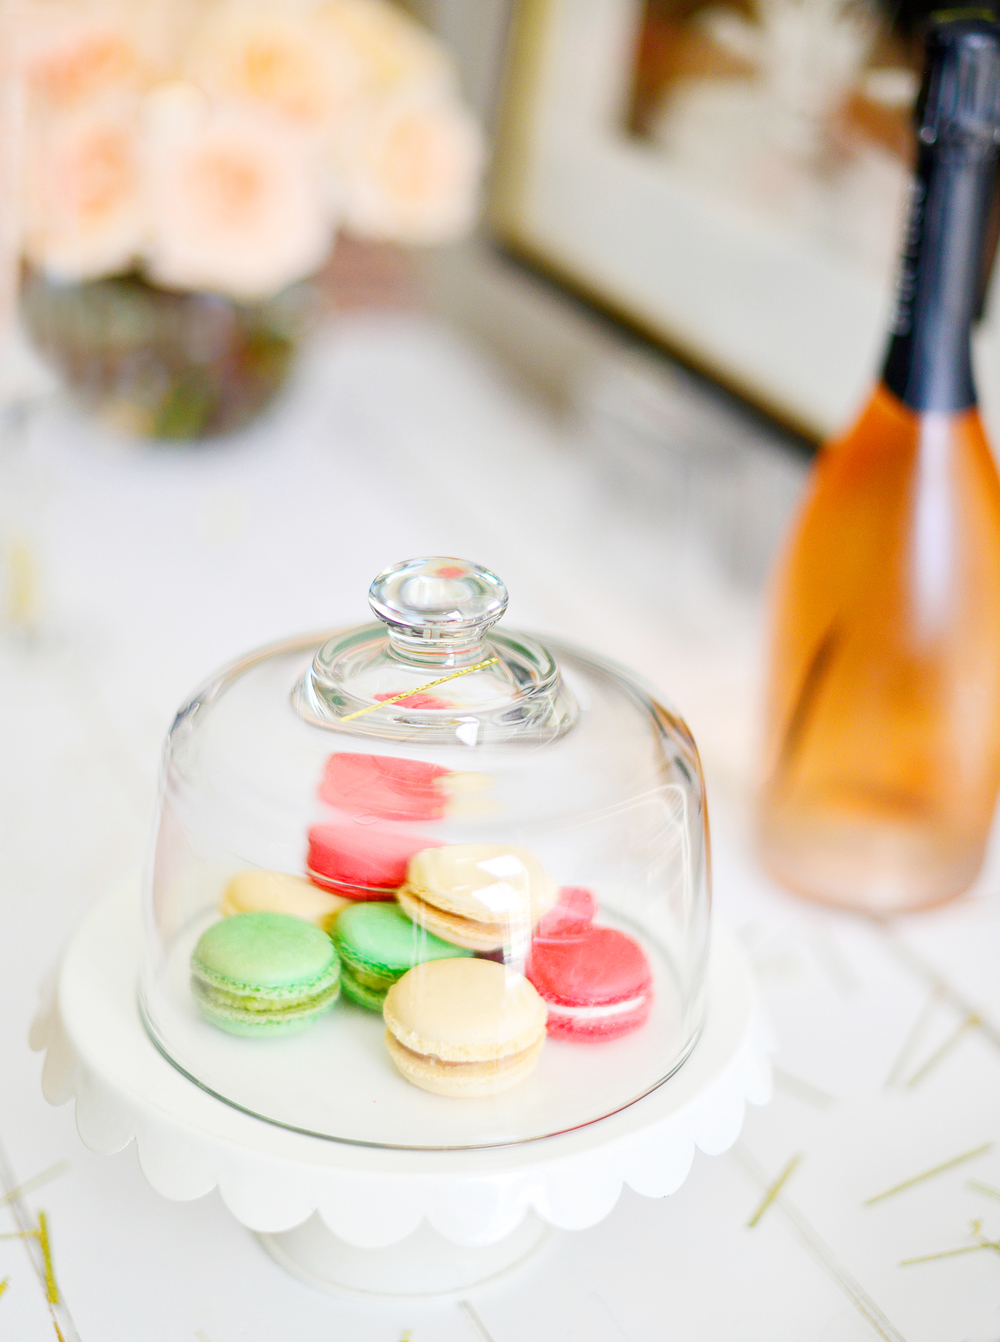 Macarons are a perfect dessert to serve with Champagne. Plus they make the cutest decorations.